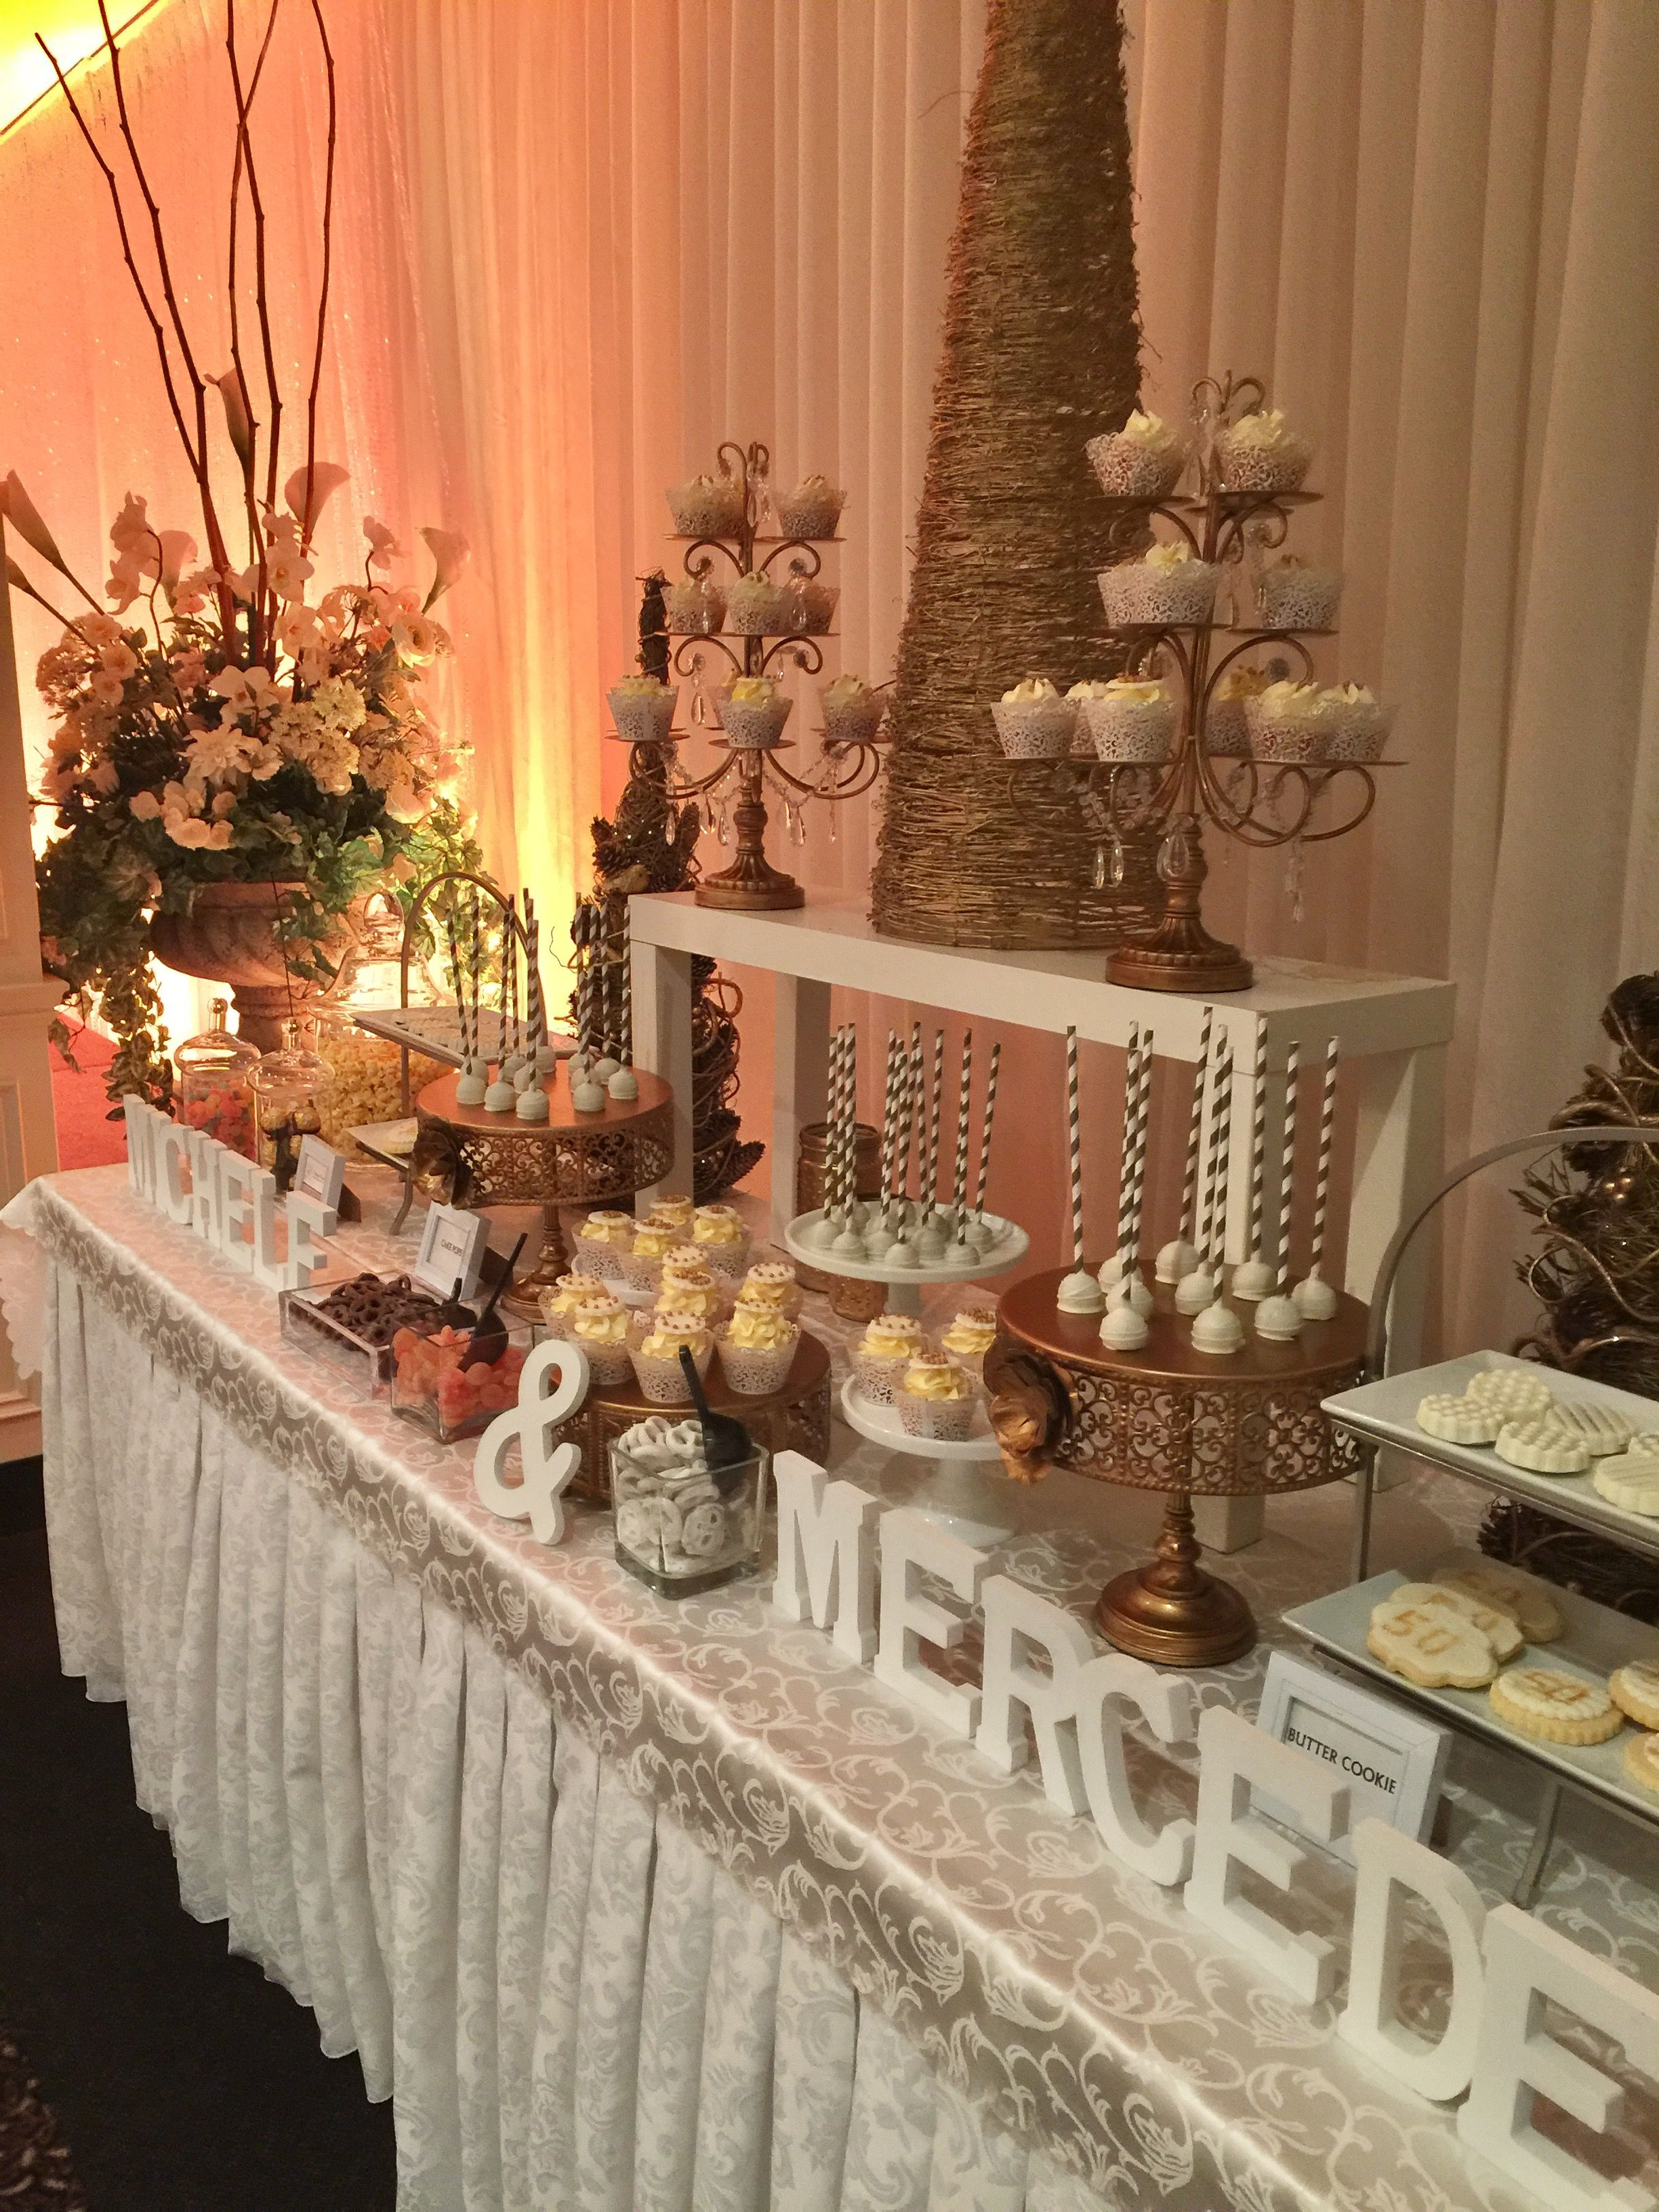 Gold Theme 50th Anniversary Sweet Candy Bar Cupcakes Cake Pops Cookies Candy Cake Table Decorations 50th Wedding Anniversary Table Decorations